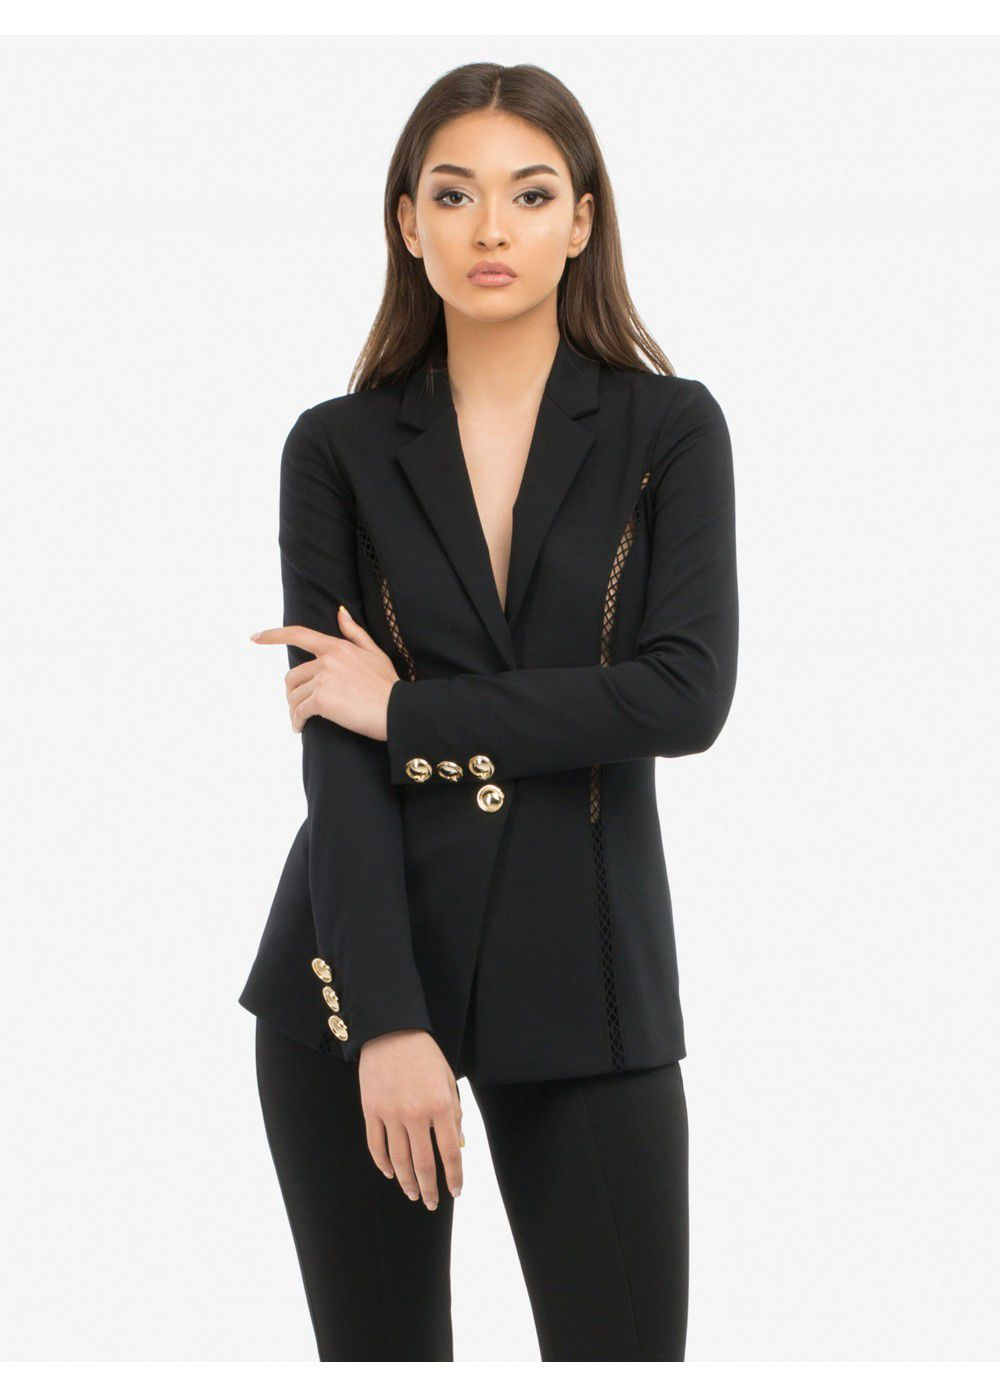 Roberto Cavalli Black Jacket with Gold Buttons